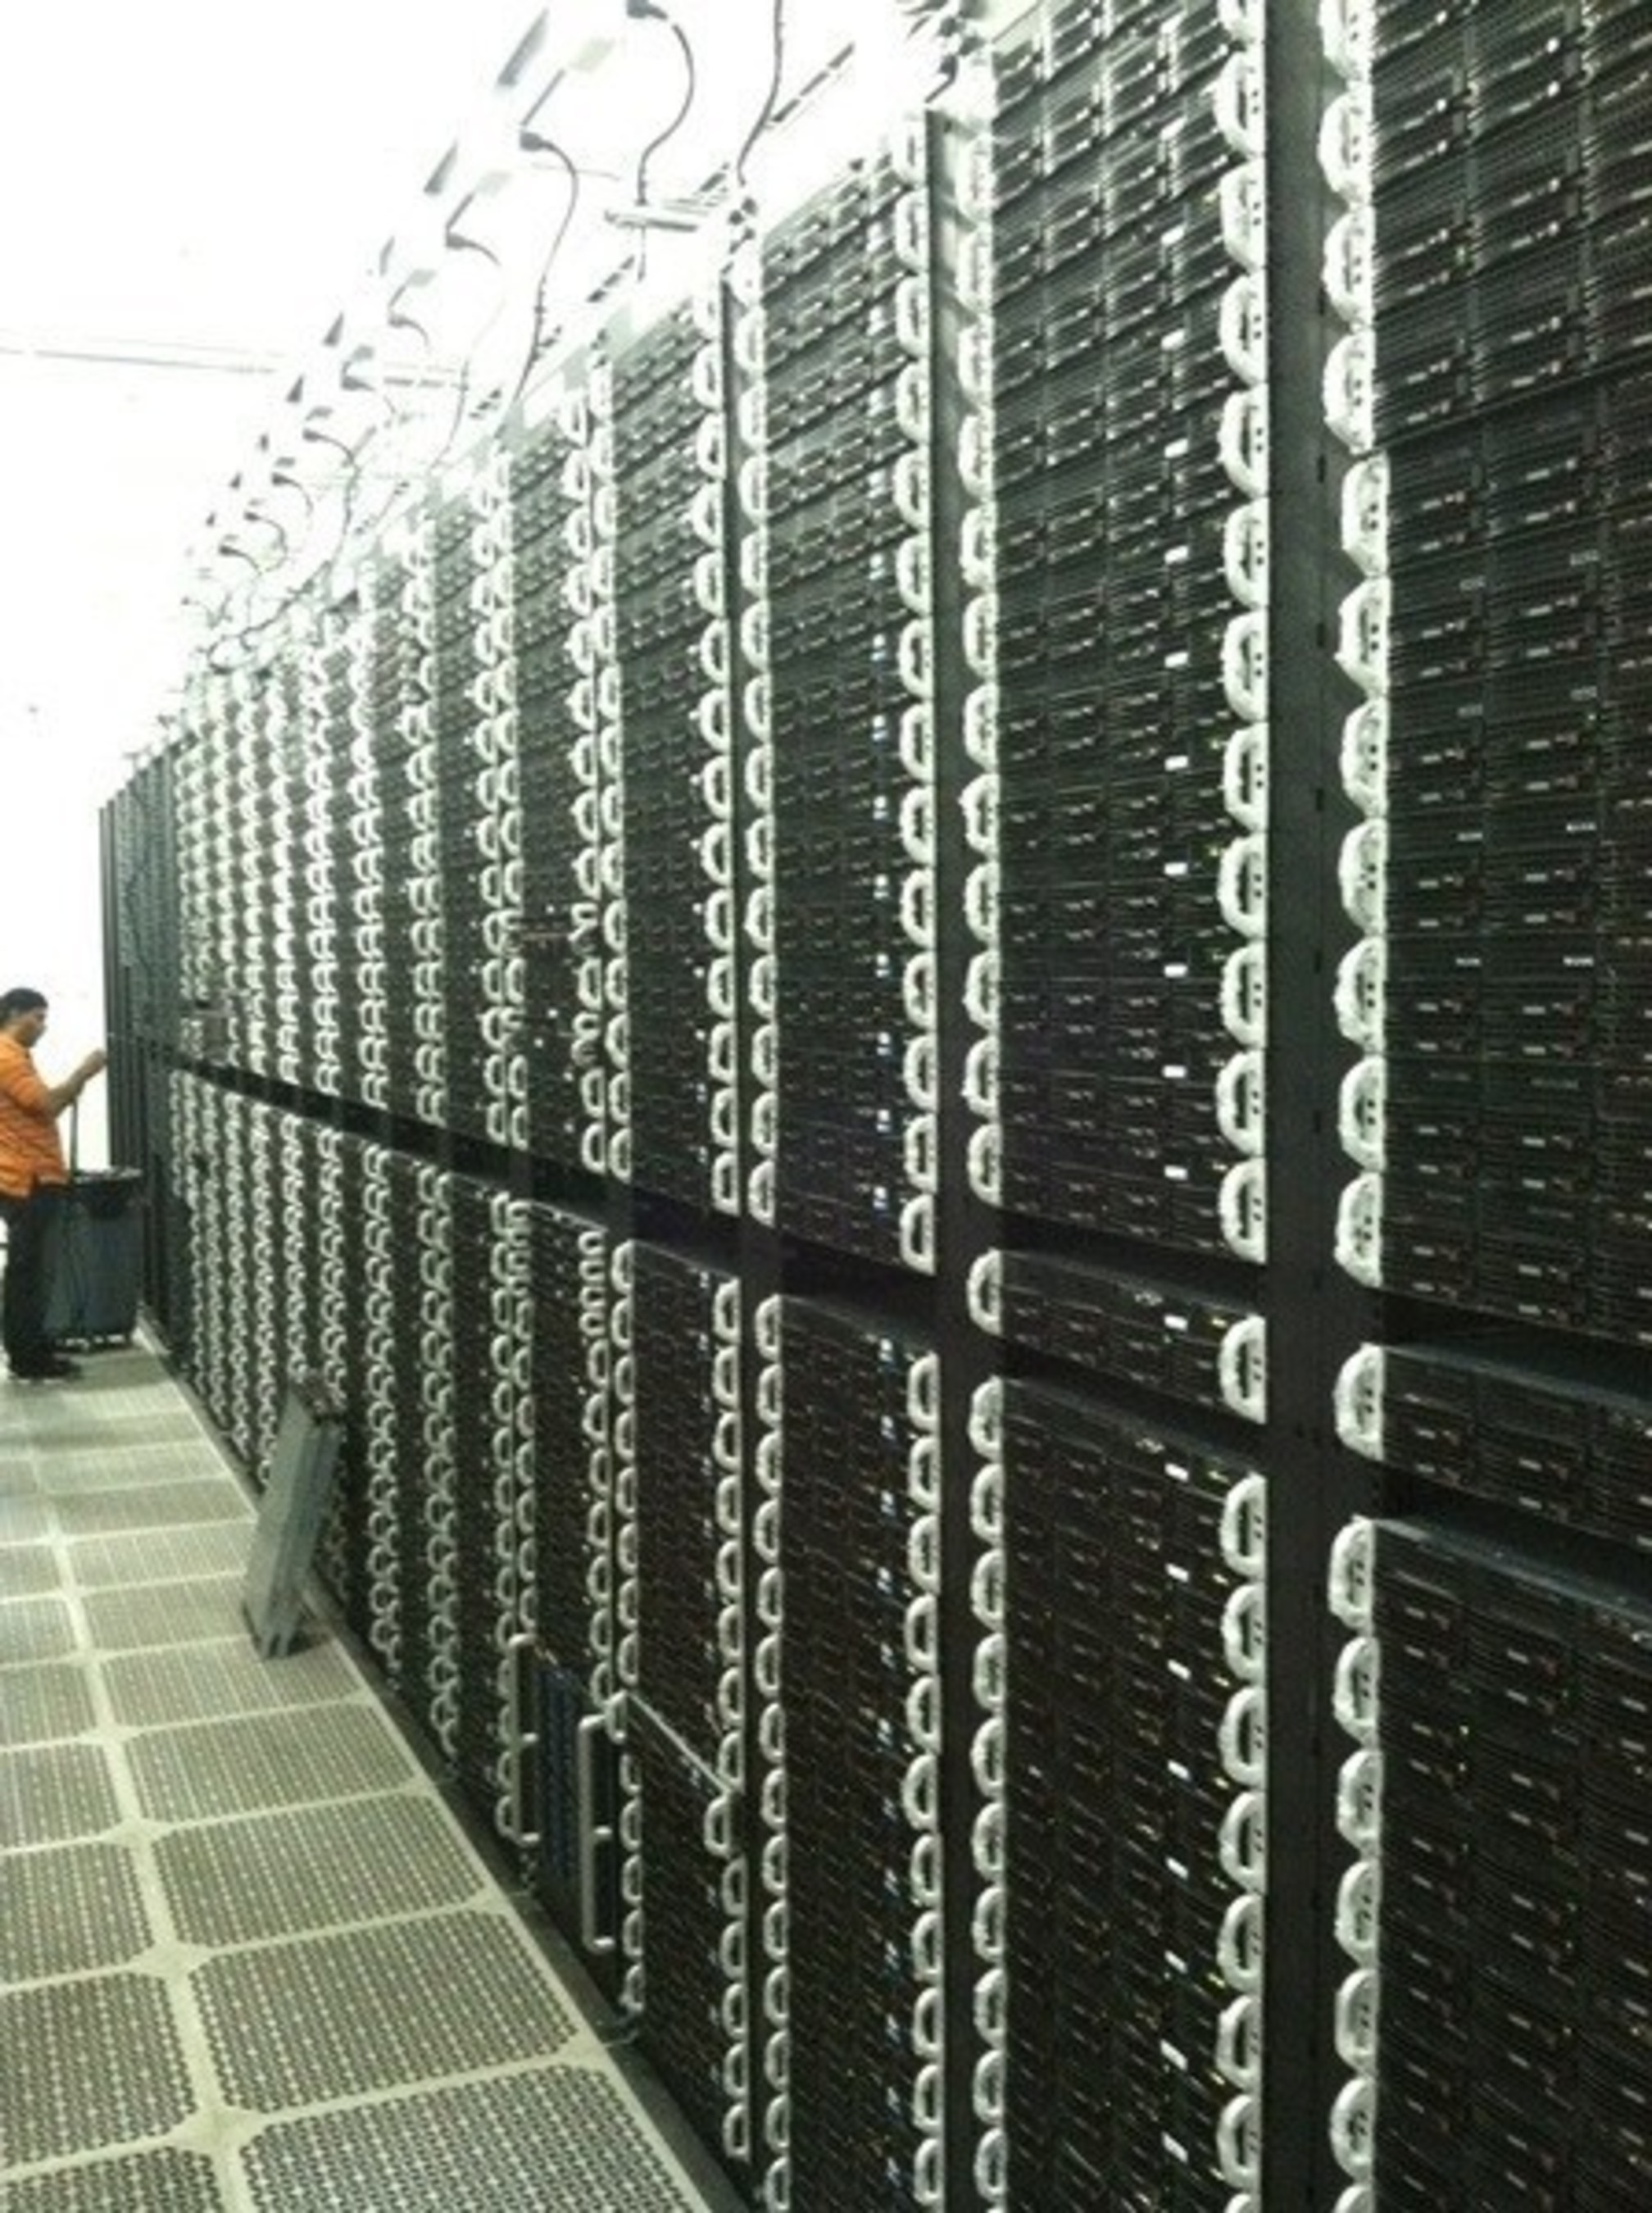 One of Vultr's 14 datacenters offering low-latency, scalable platforms worldwide